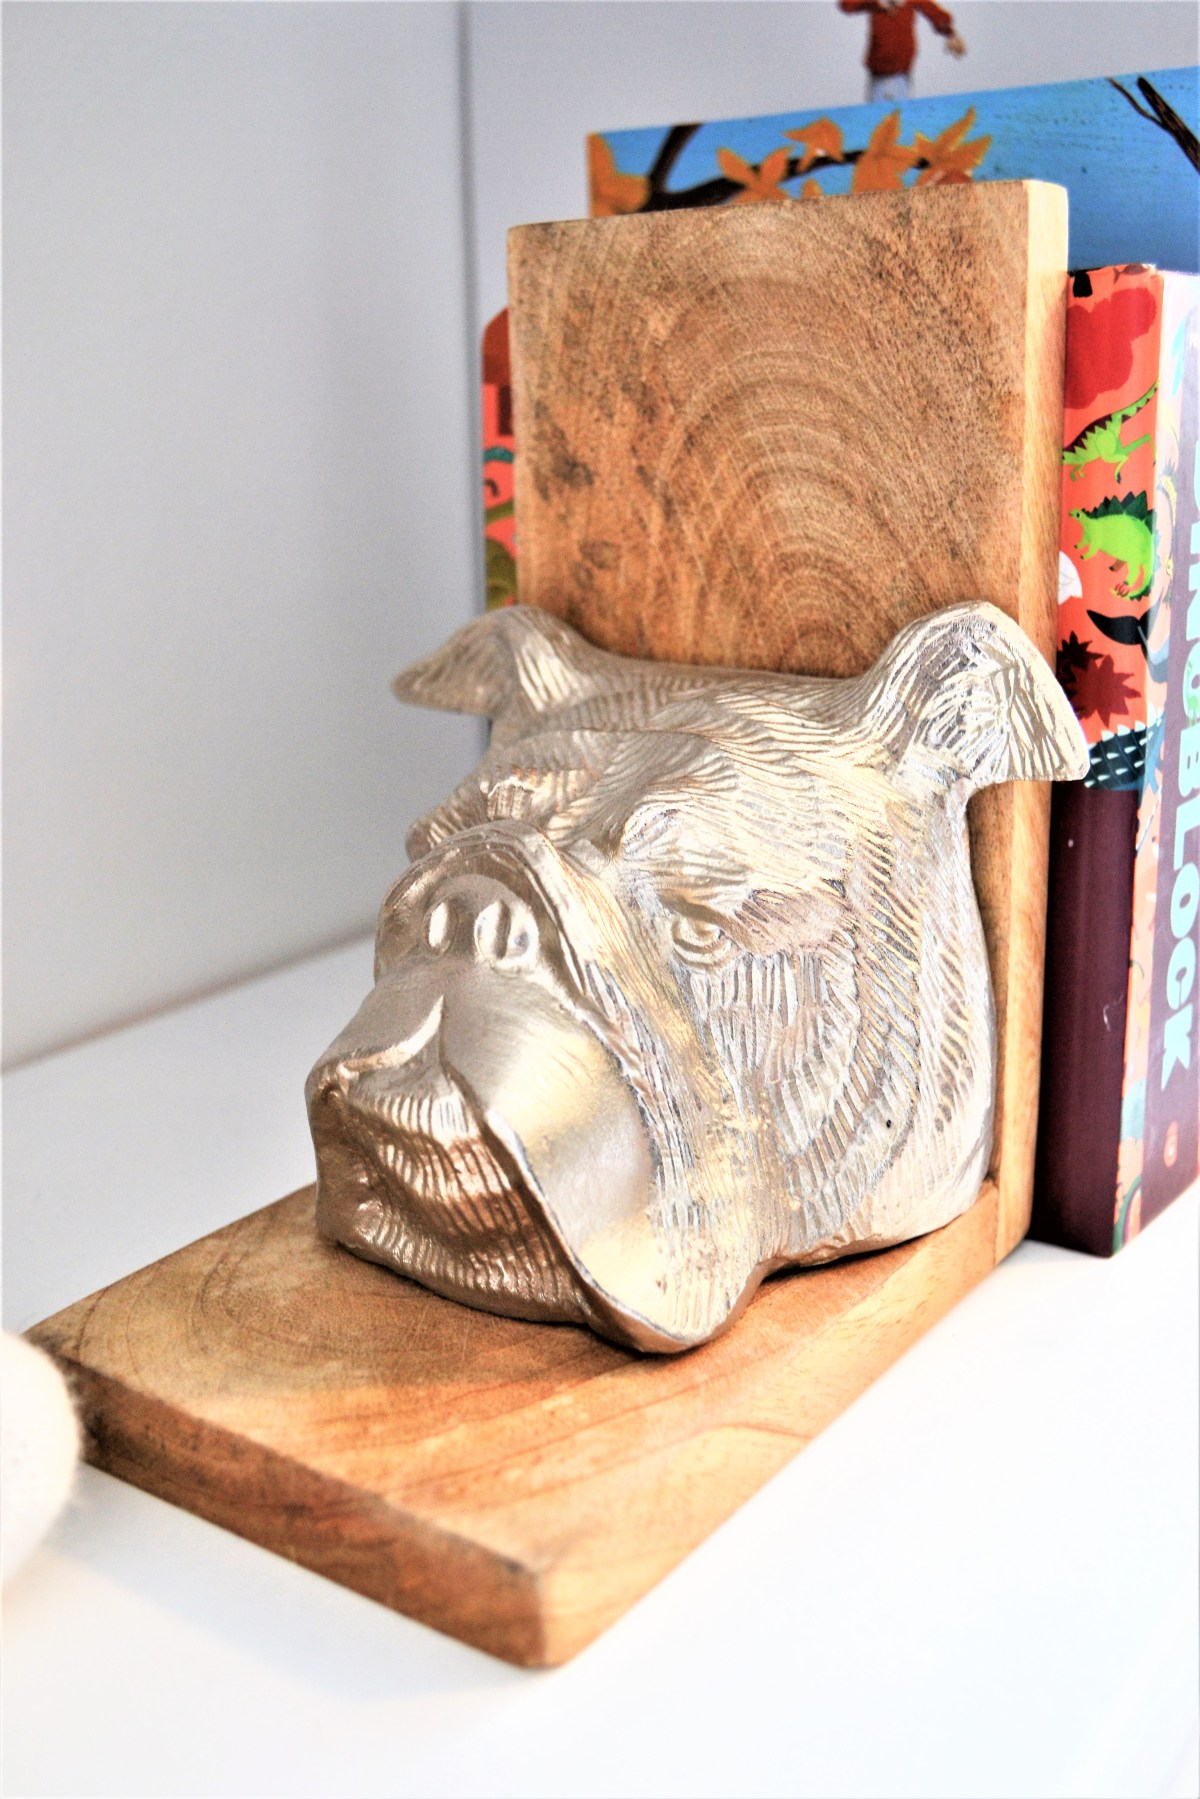 How to decorate your kids room with silver accents - puppy bookends